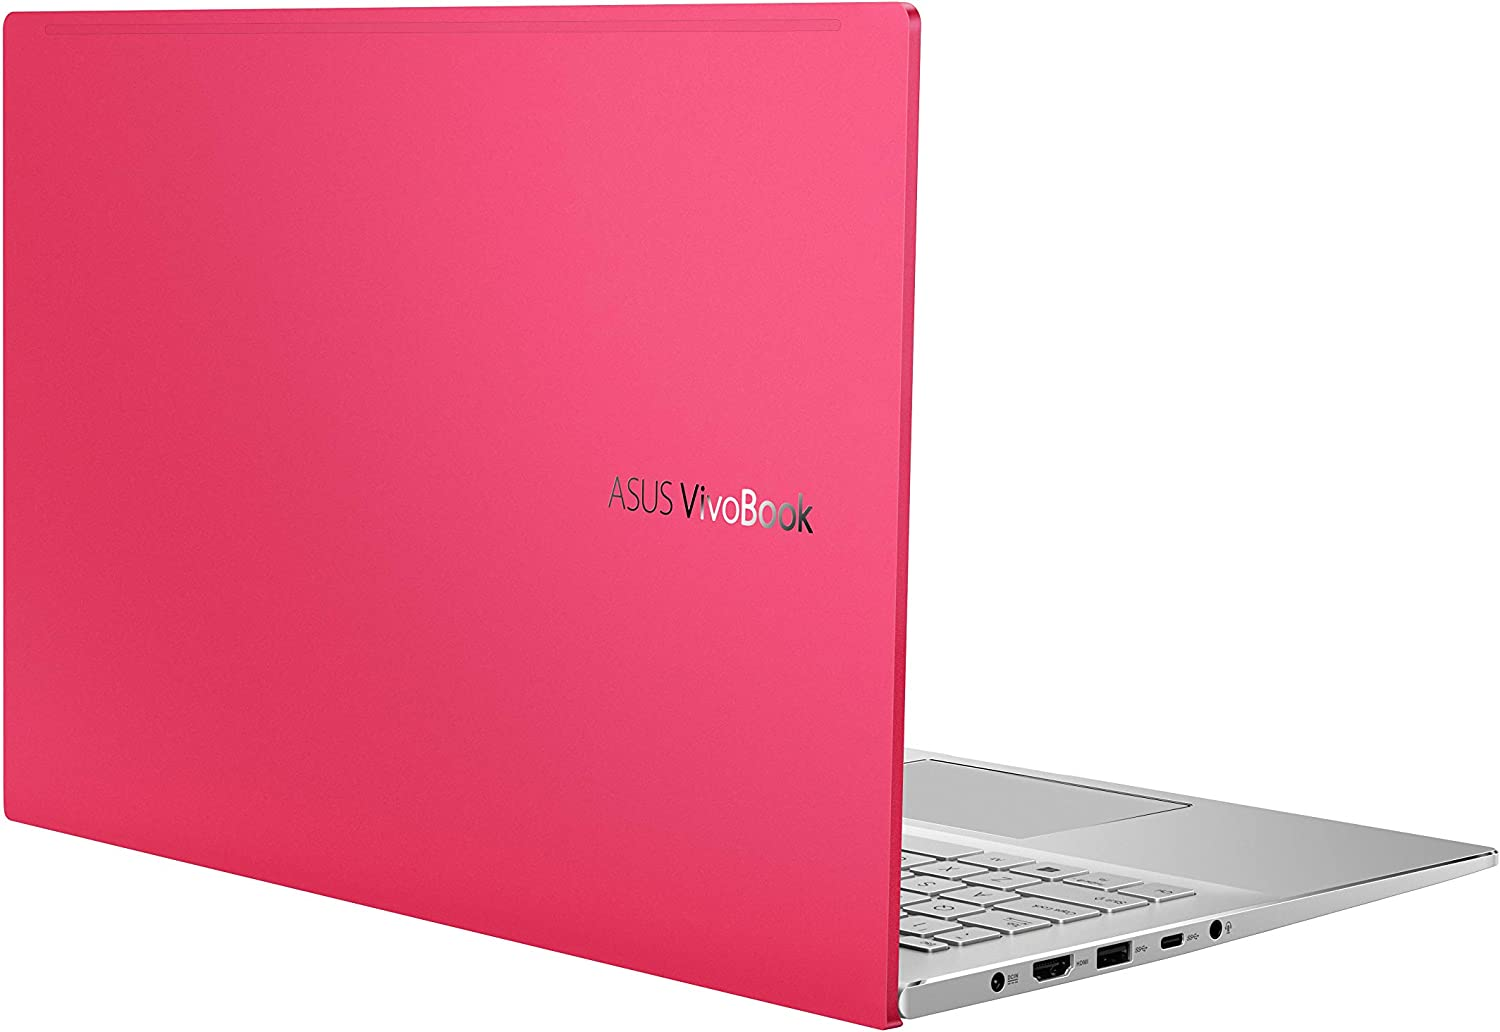 "ASUS VivoBook S15 S533 Thin and Light Laptop, 15.6"" FHD Display, Intel Core i5-10210U CPU, 8GB DDR4 RAM, 512GB PCIe SSD, Windows 10 Home, Resolute Red, S533FA-DS51-RD"